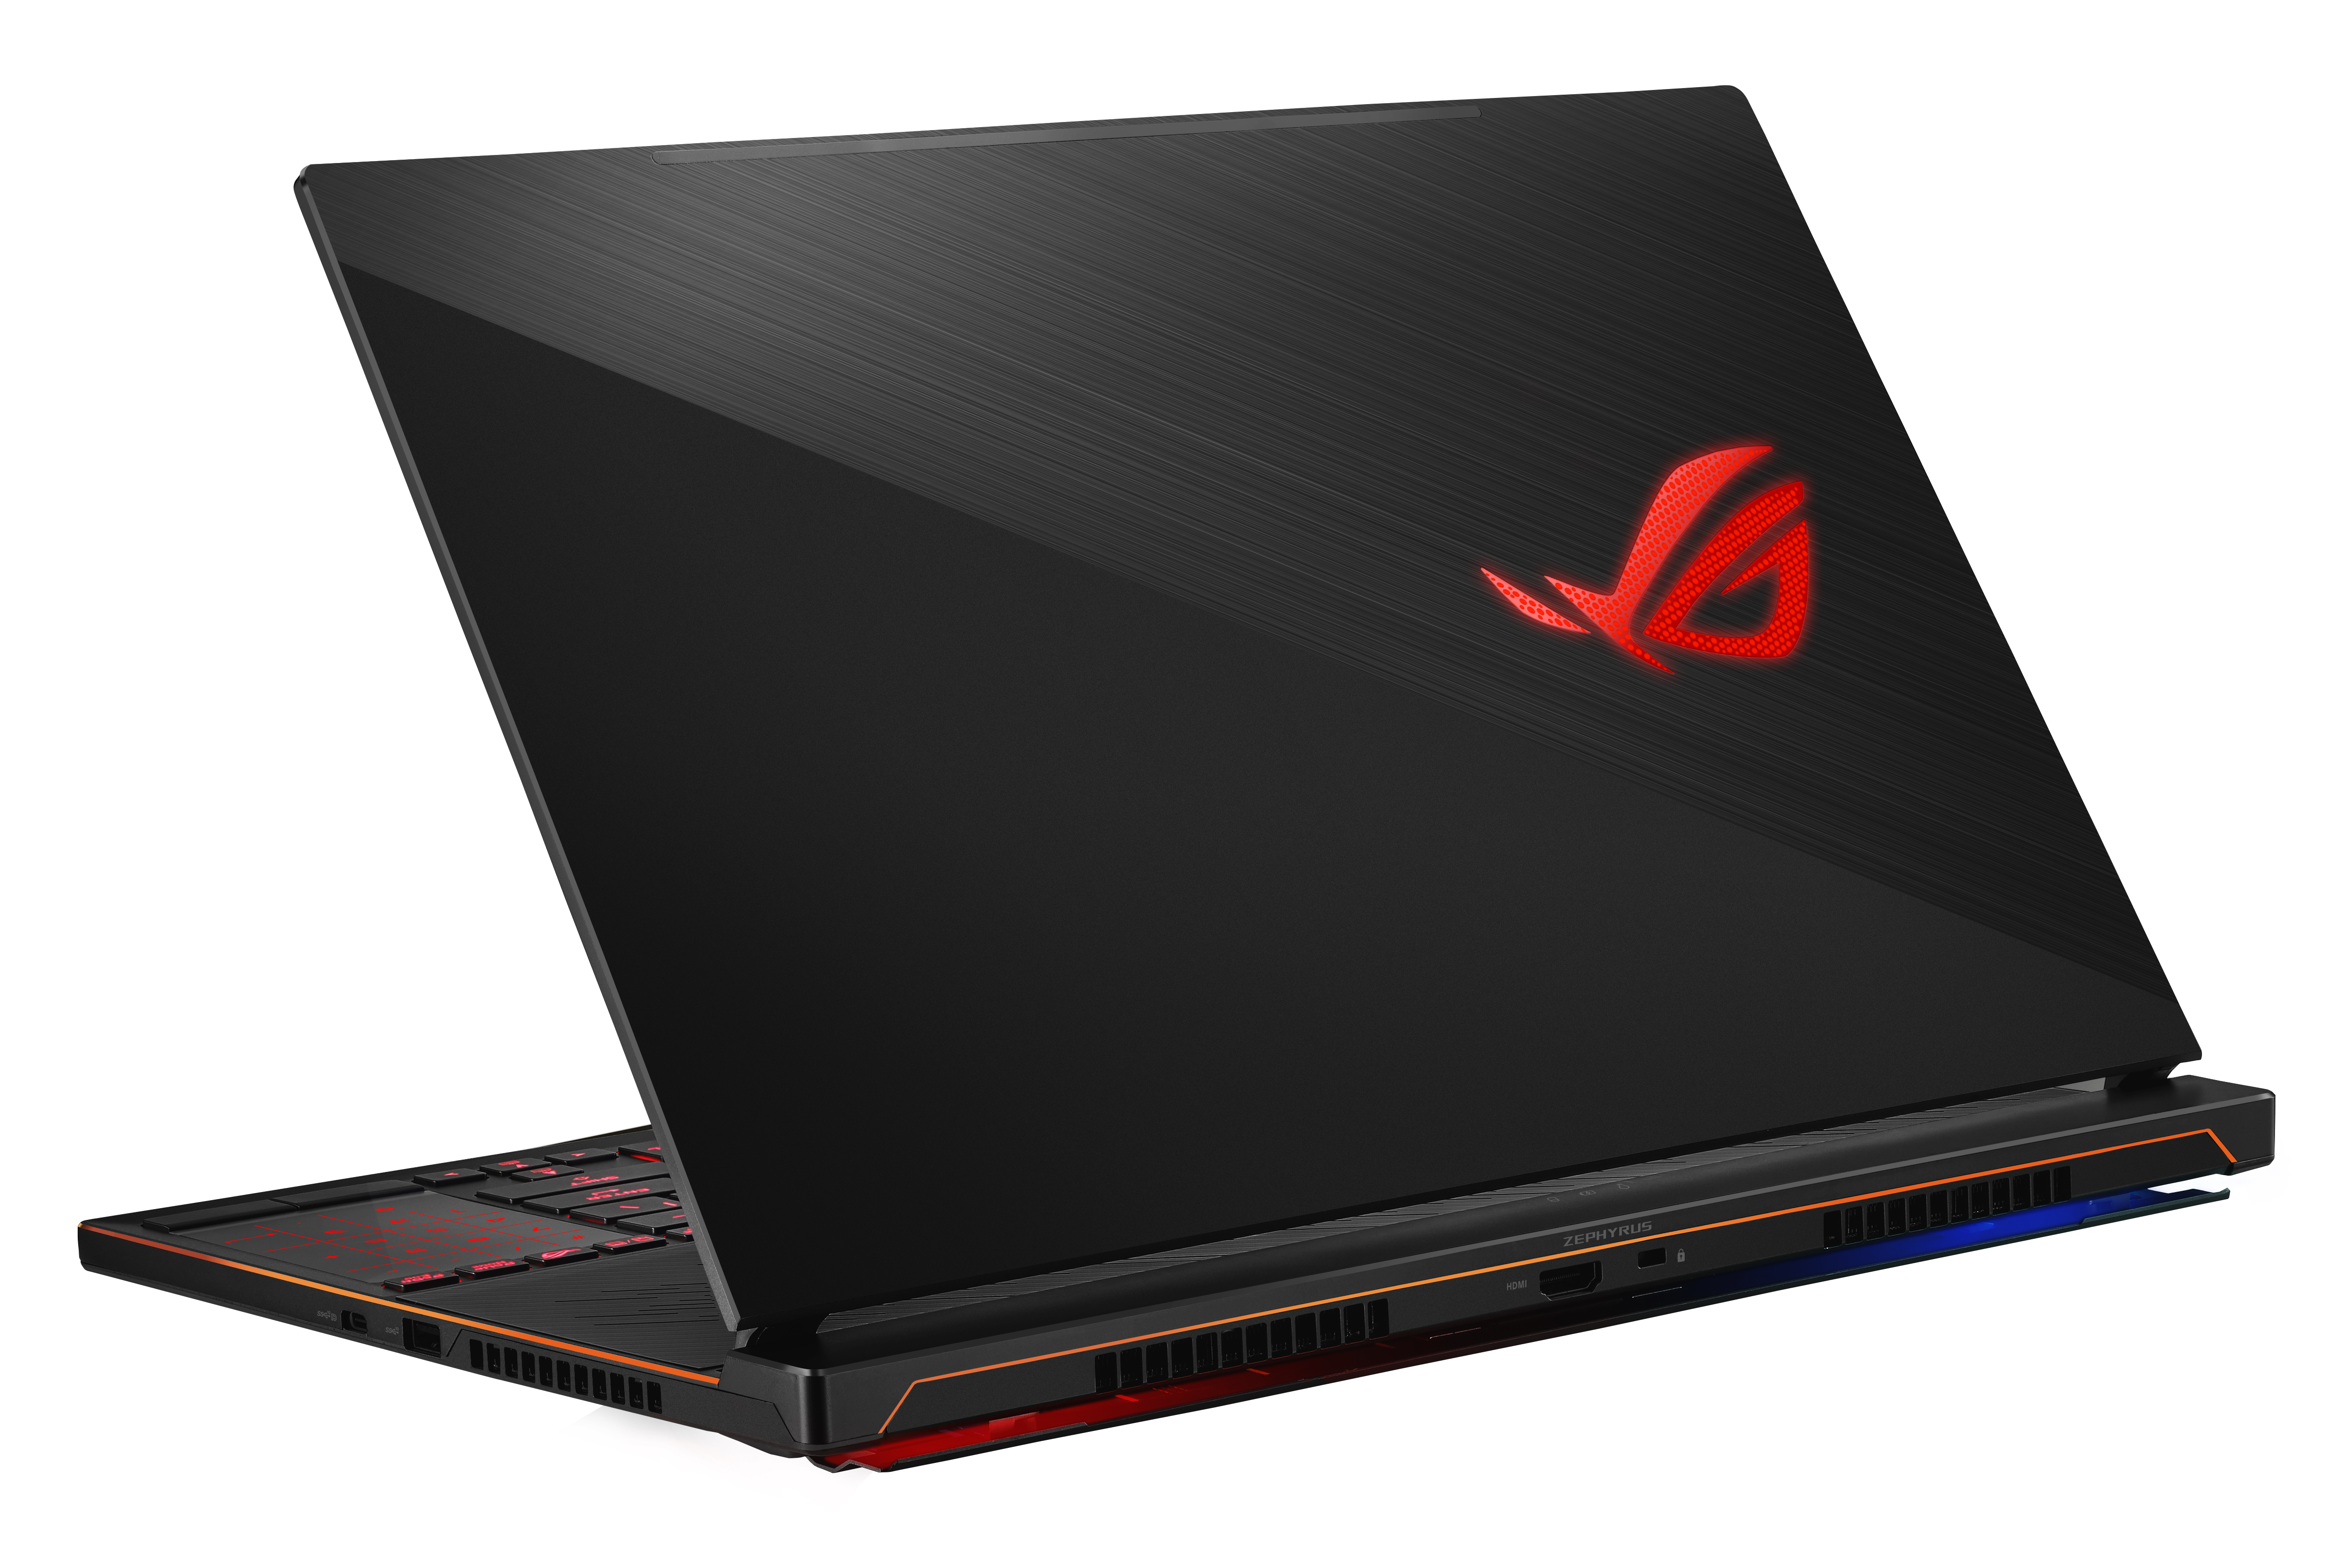 ASUS Announces The ROG Zephyrus S: Slimmest Gaming Laptop Available